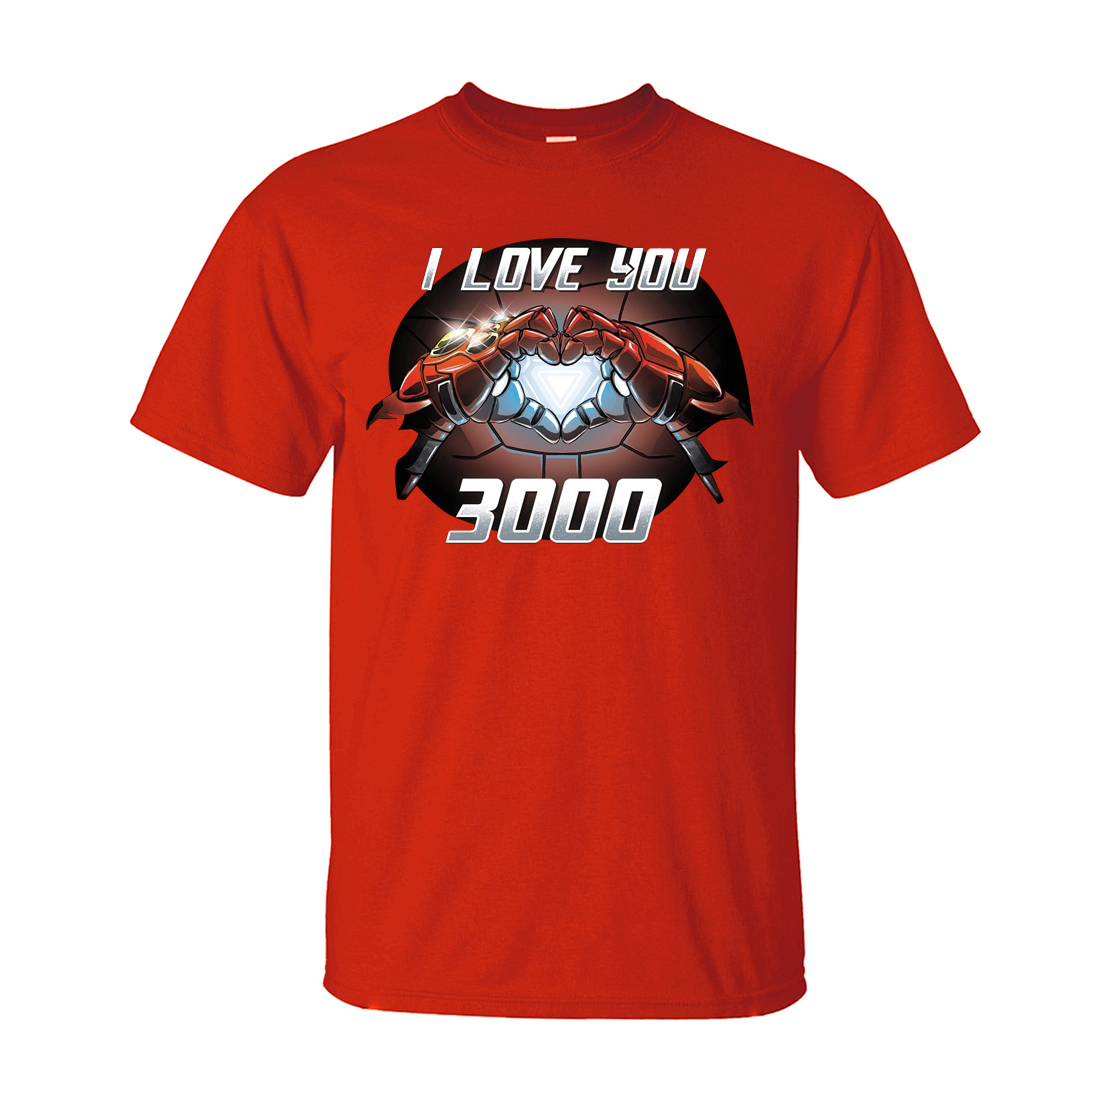 ALI shop ...  ... 33014983832 ... 4 ... Tony Stark I Love You 3000 T-Shirt Men The Avengers Iron Man Moive Shirt 2019 New Summer Casual Plus Size Tops Tees S-3XL ...